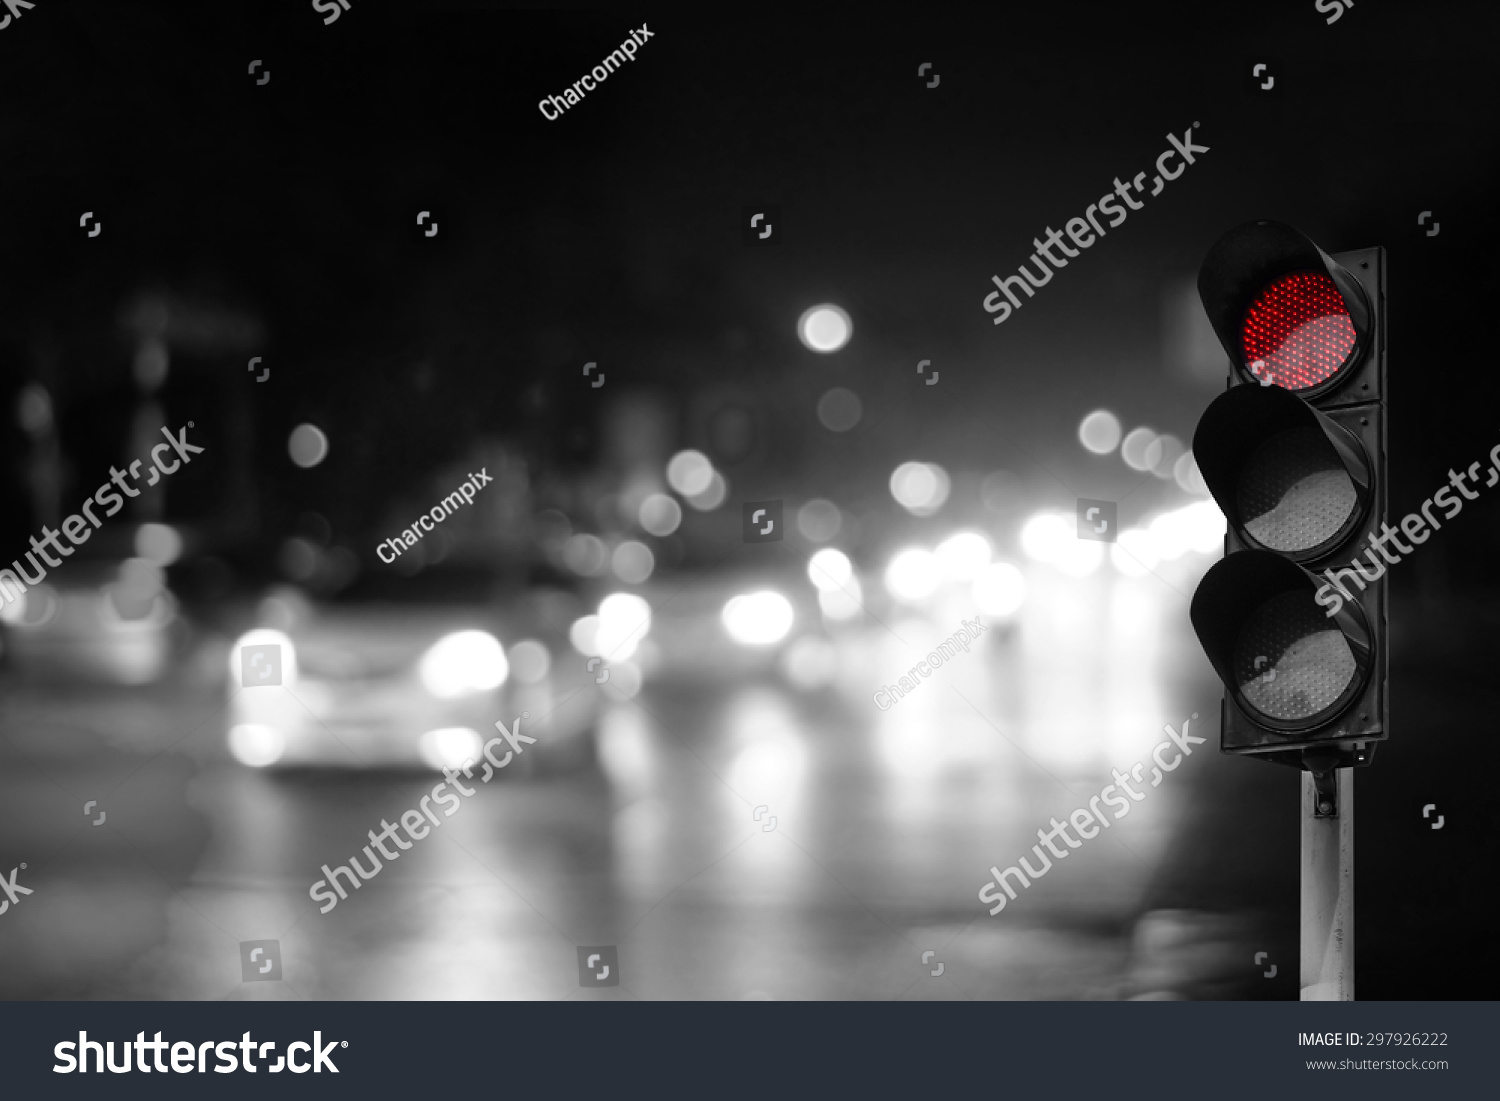 Red Traffic Light On Road Night Stock Photo 297926222 - Shutterstock for Traffic Light On Road At Night  45jwn